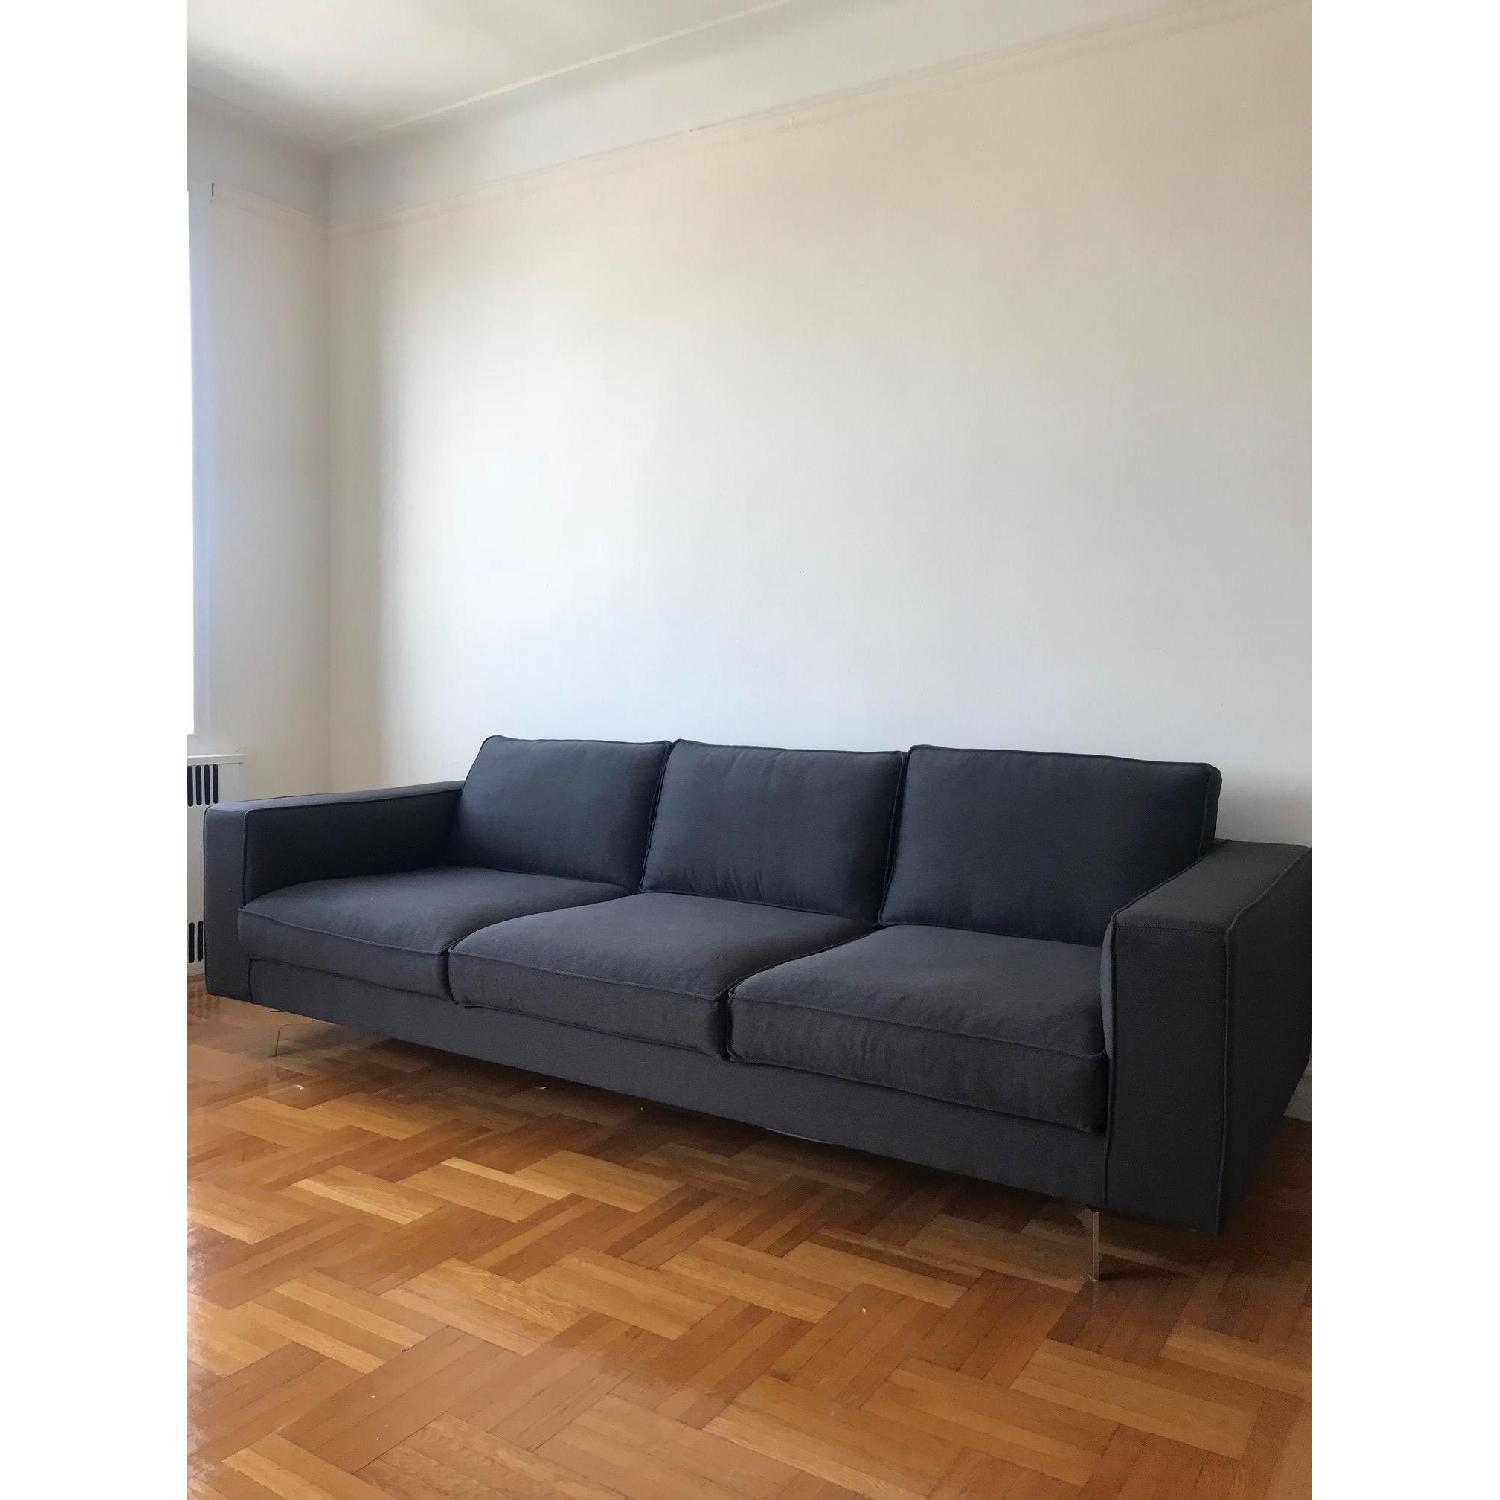 Calligaris Square 3 Seater Sofa w/ Metal Legs-1